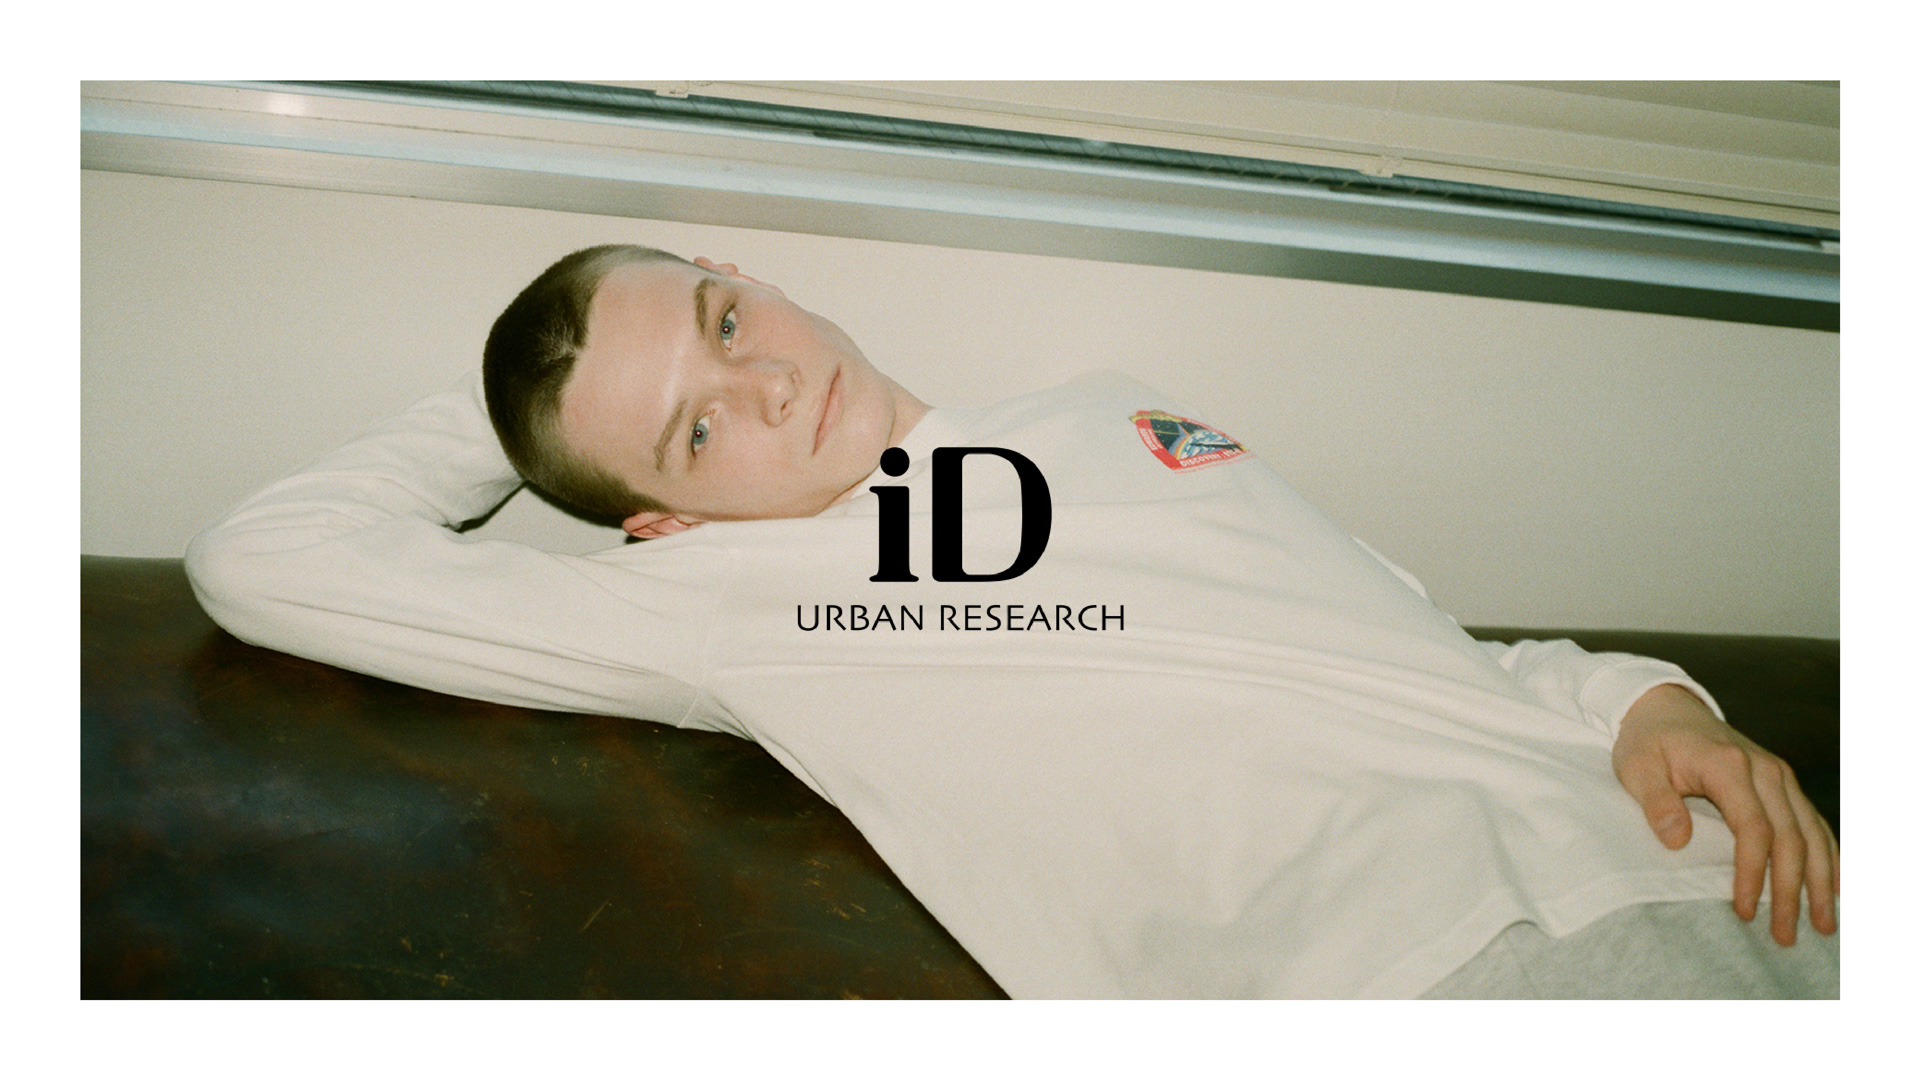 URBAN RESEARCH iD 2018 AUTUMN / WINTER